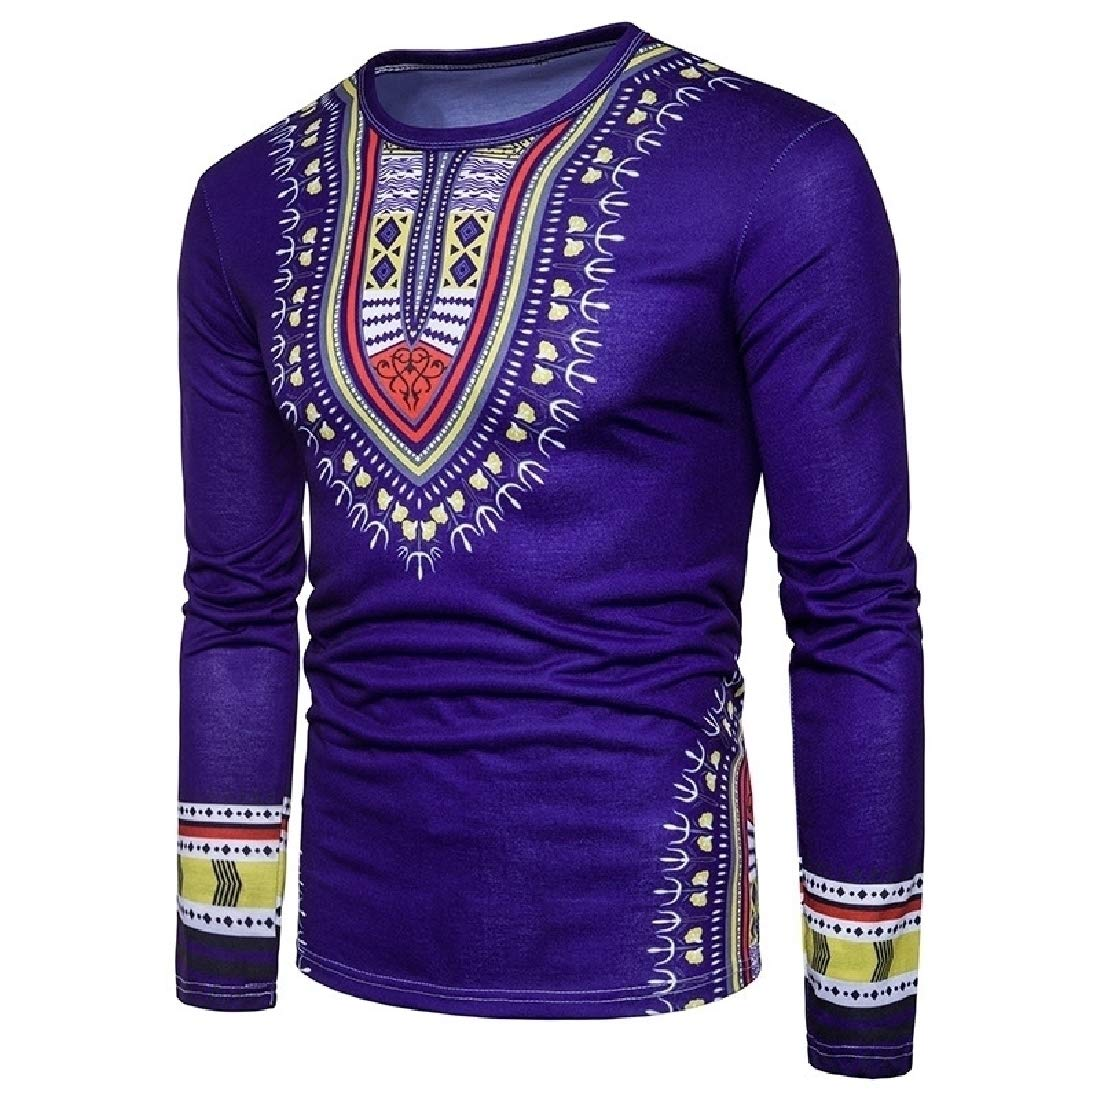 Doufine Men's Tops Spell Color Dashiki African Print Folk Style T-shirts Navy Blue M by Doufine--men clothes (Image #2)